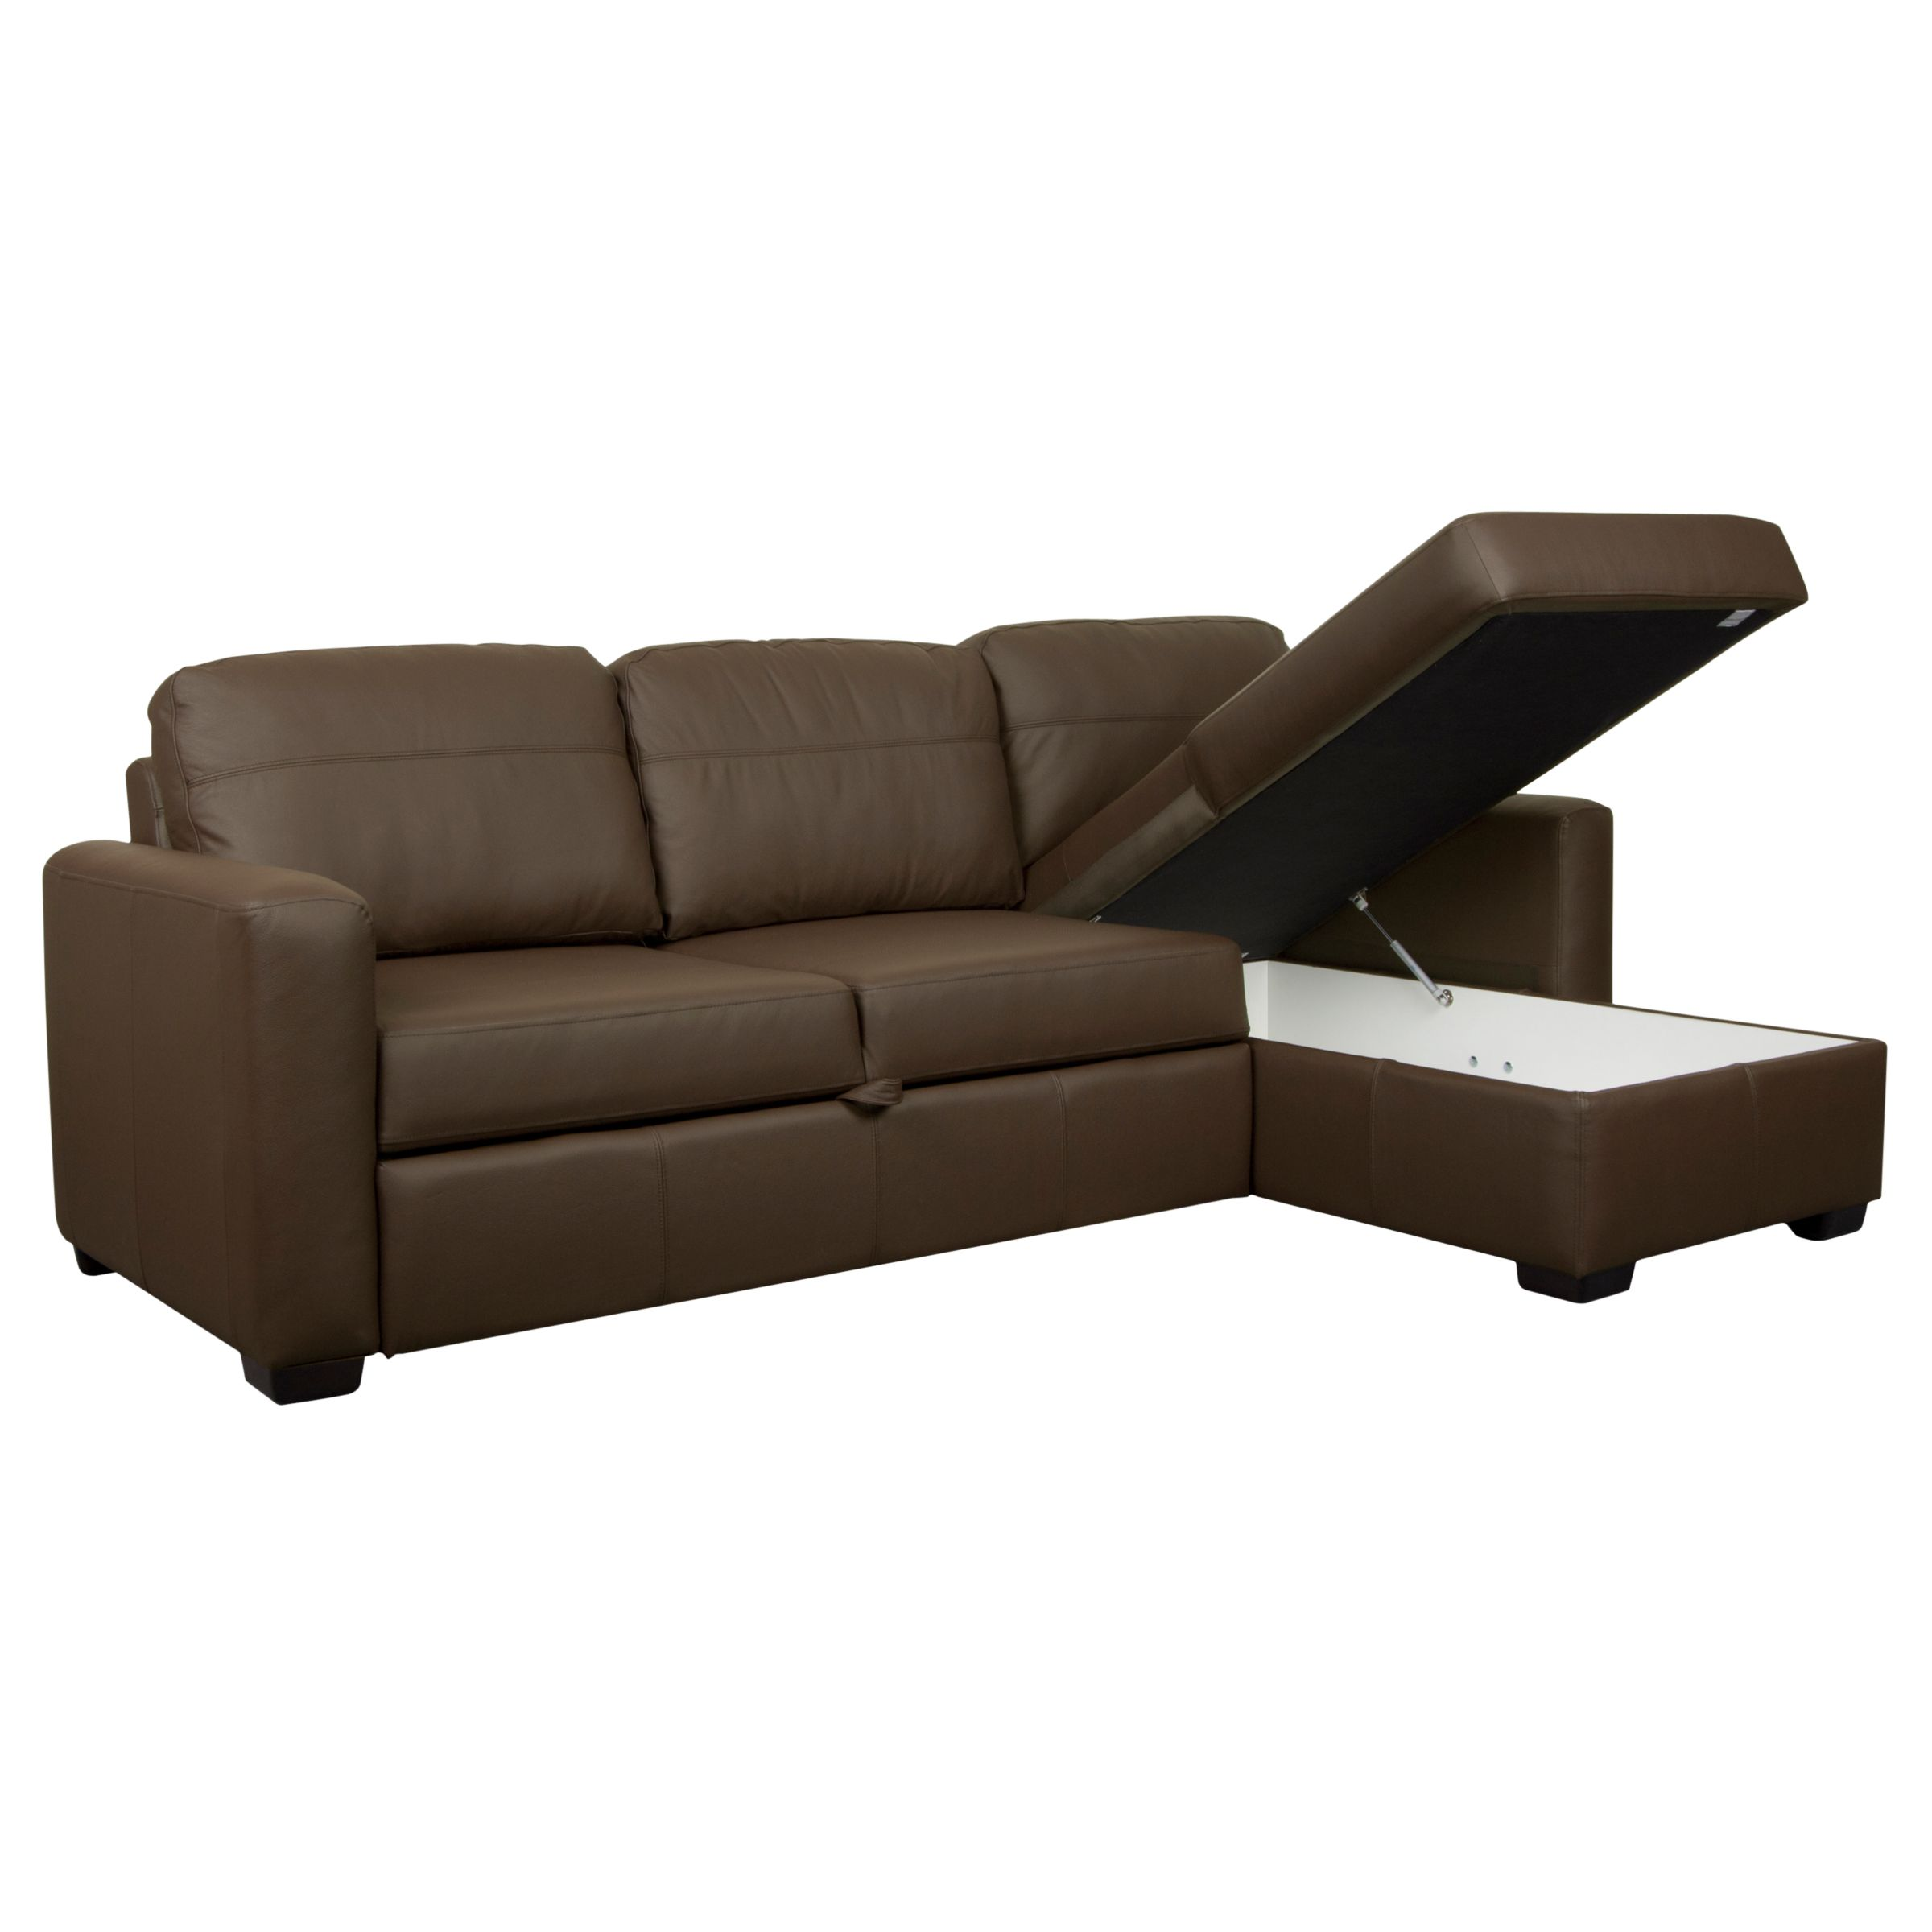 sacha large leather sofa bed madras chocolate corner ikea rp john lewis with foam mattress